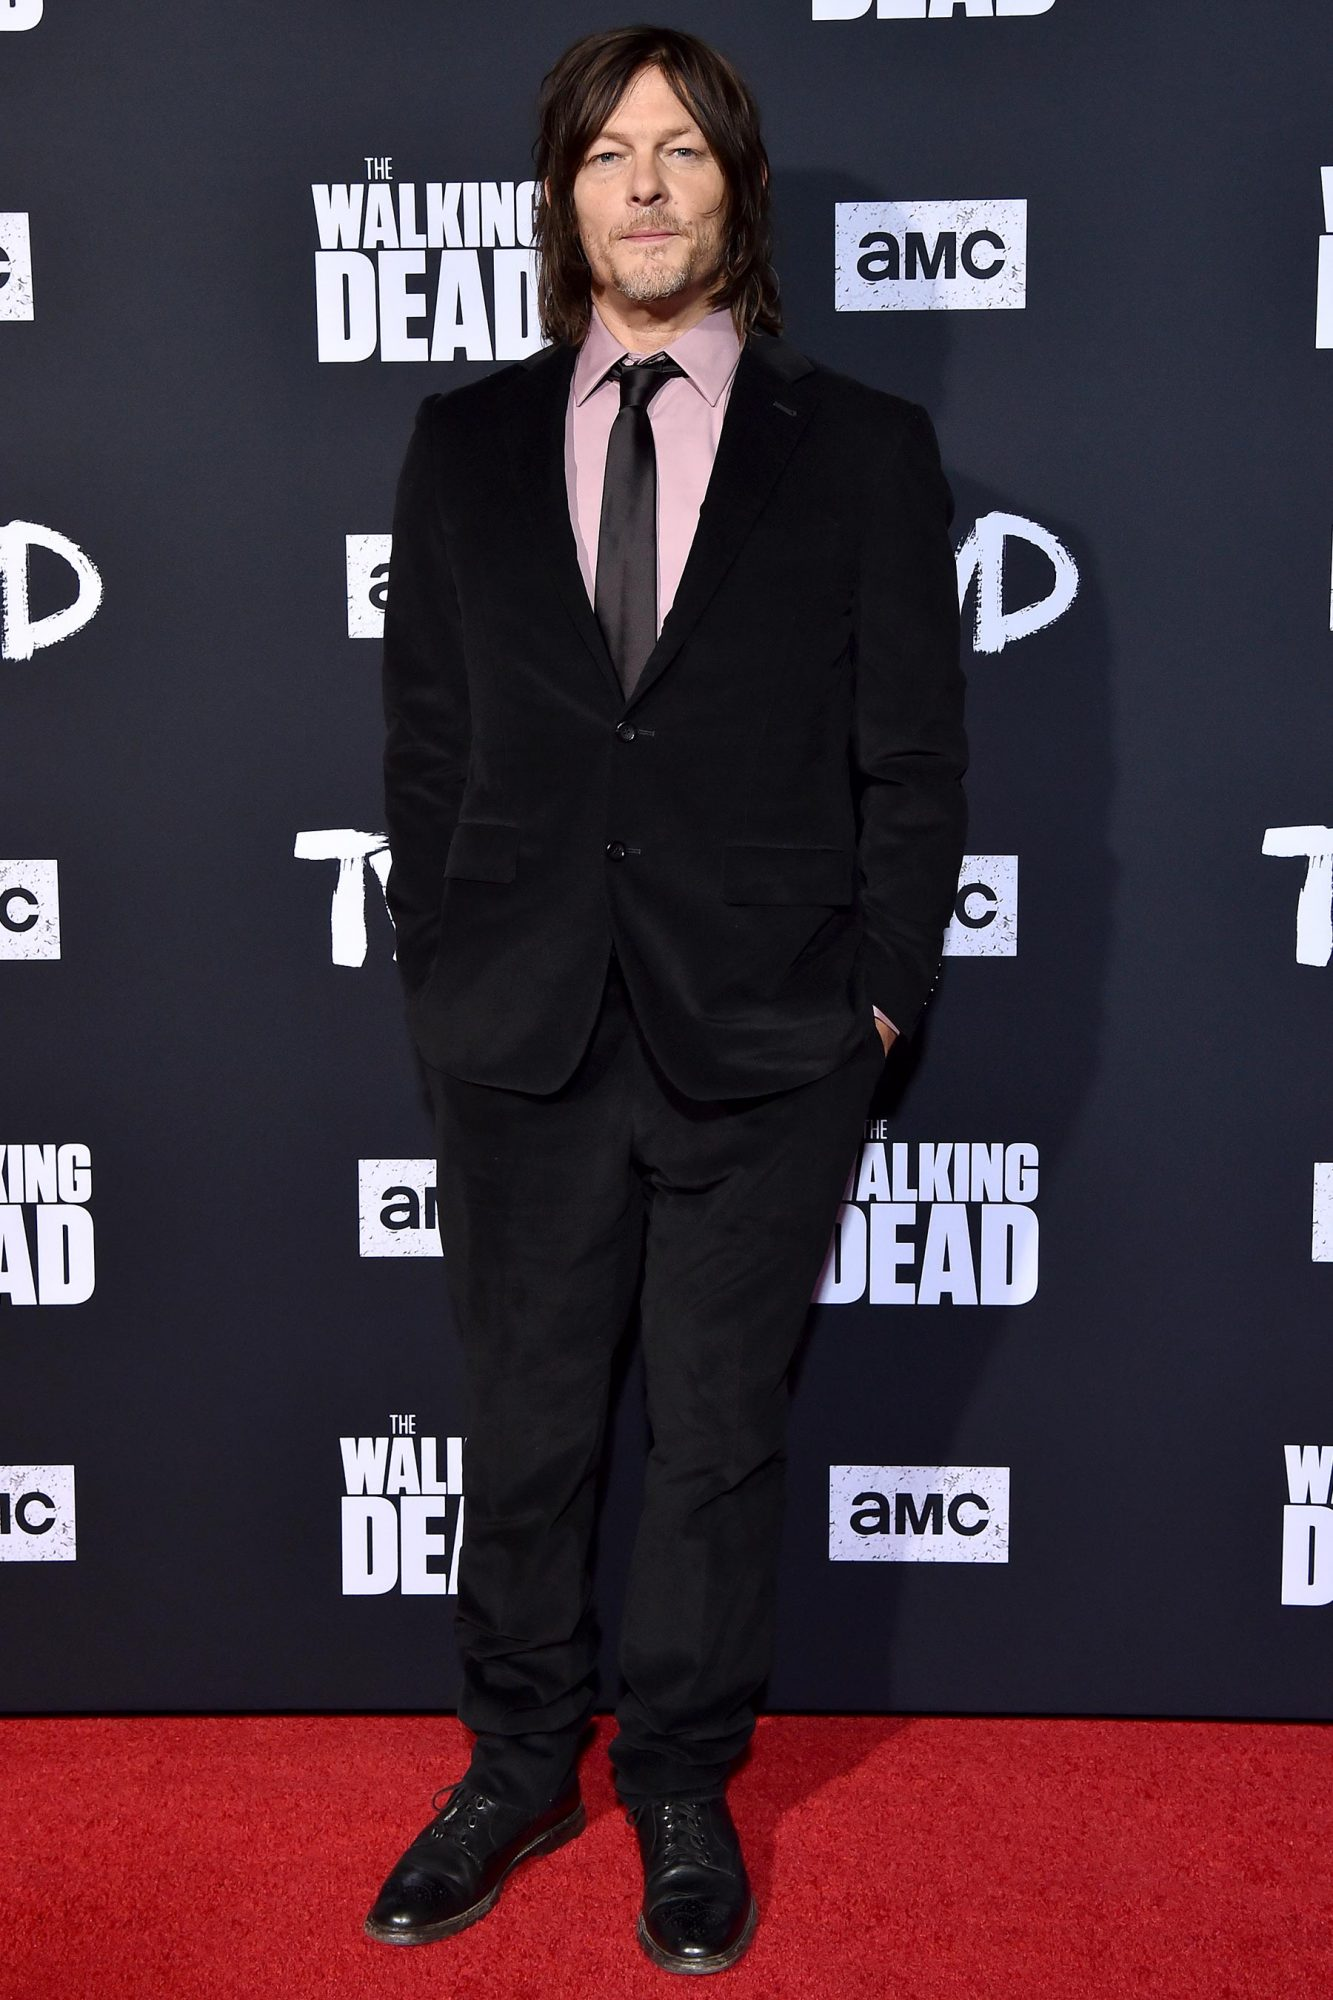 The Walking Dead Premiere